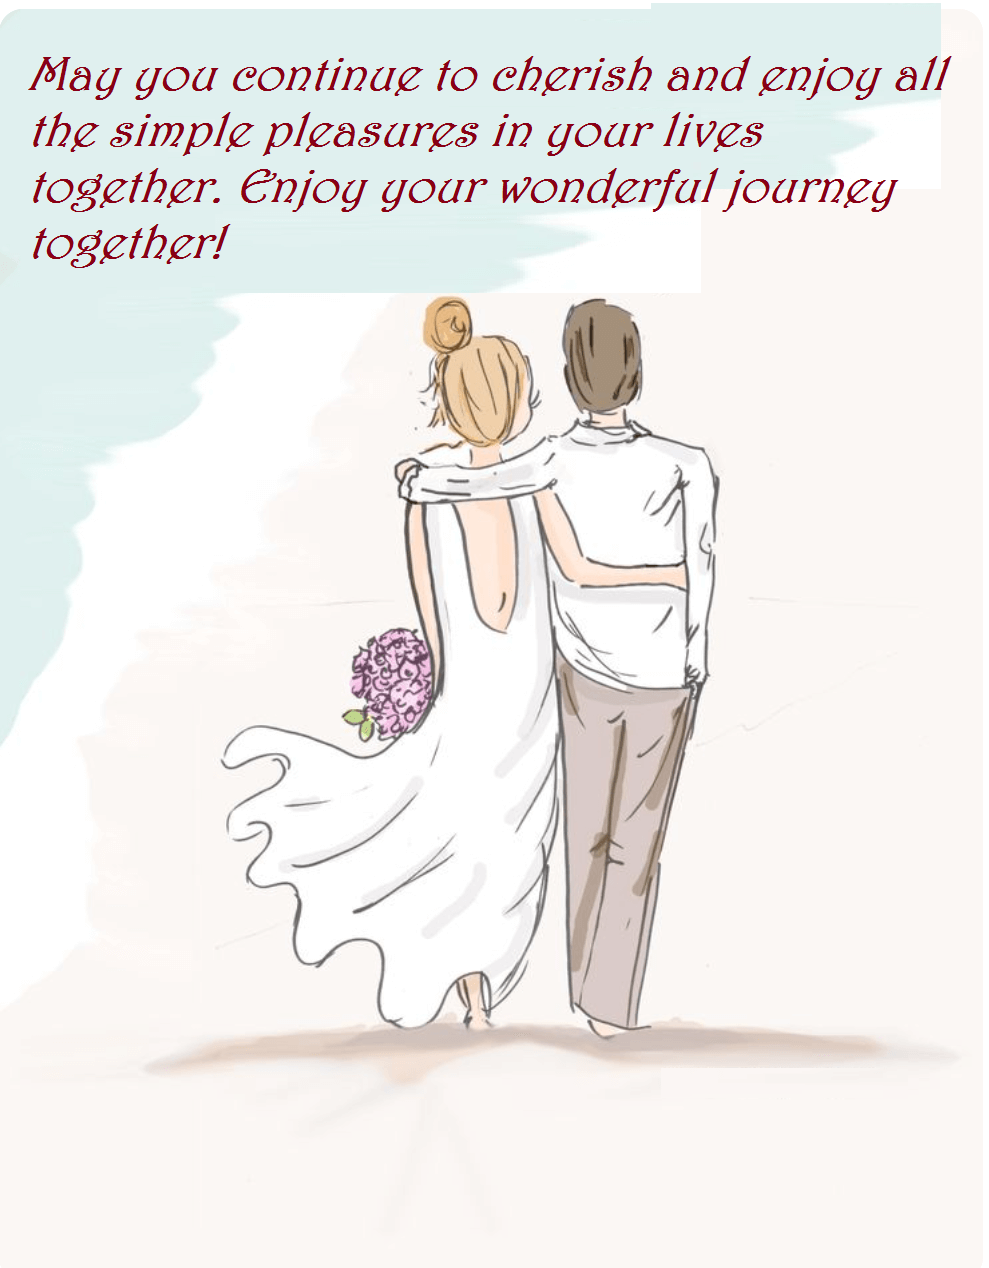 5th Marriage Anniversary Quotes Wishes Images Marriage